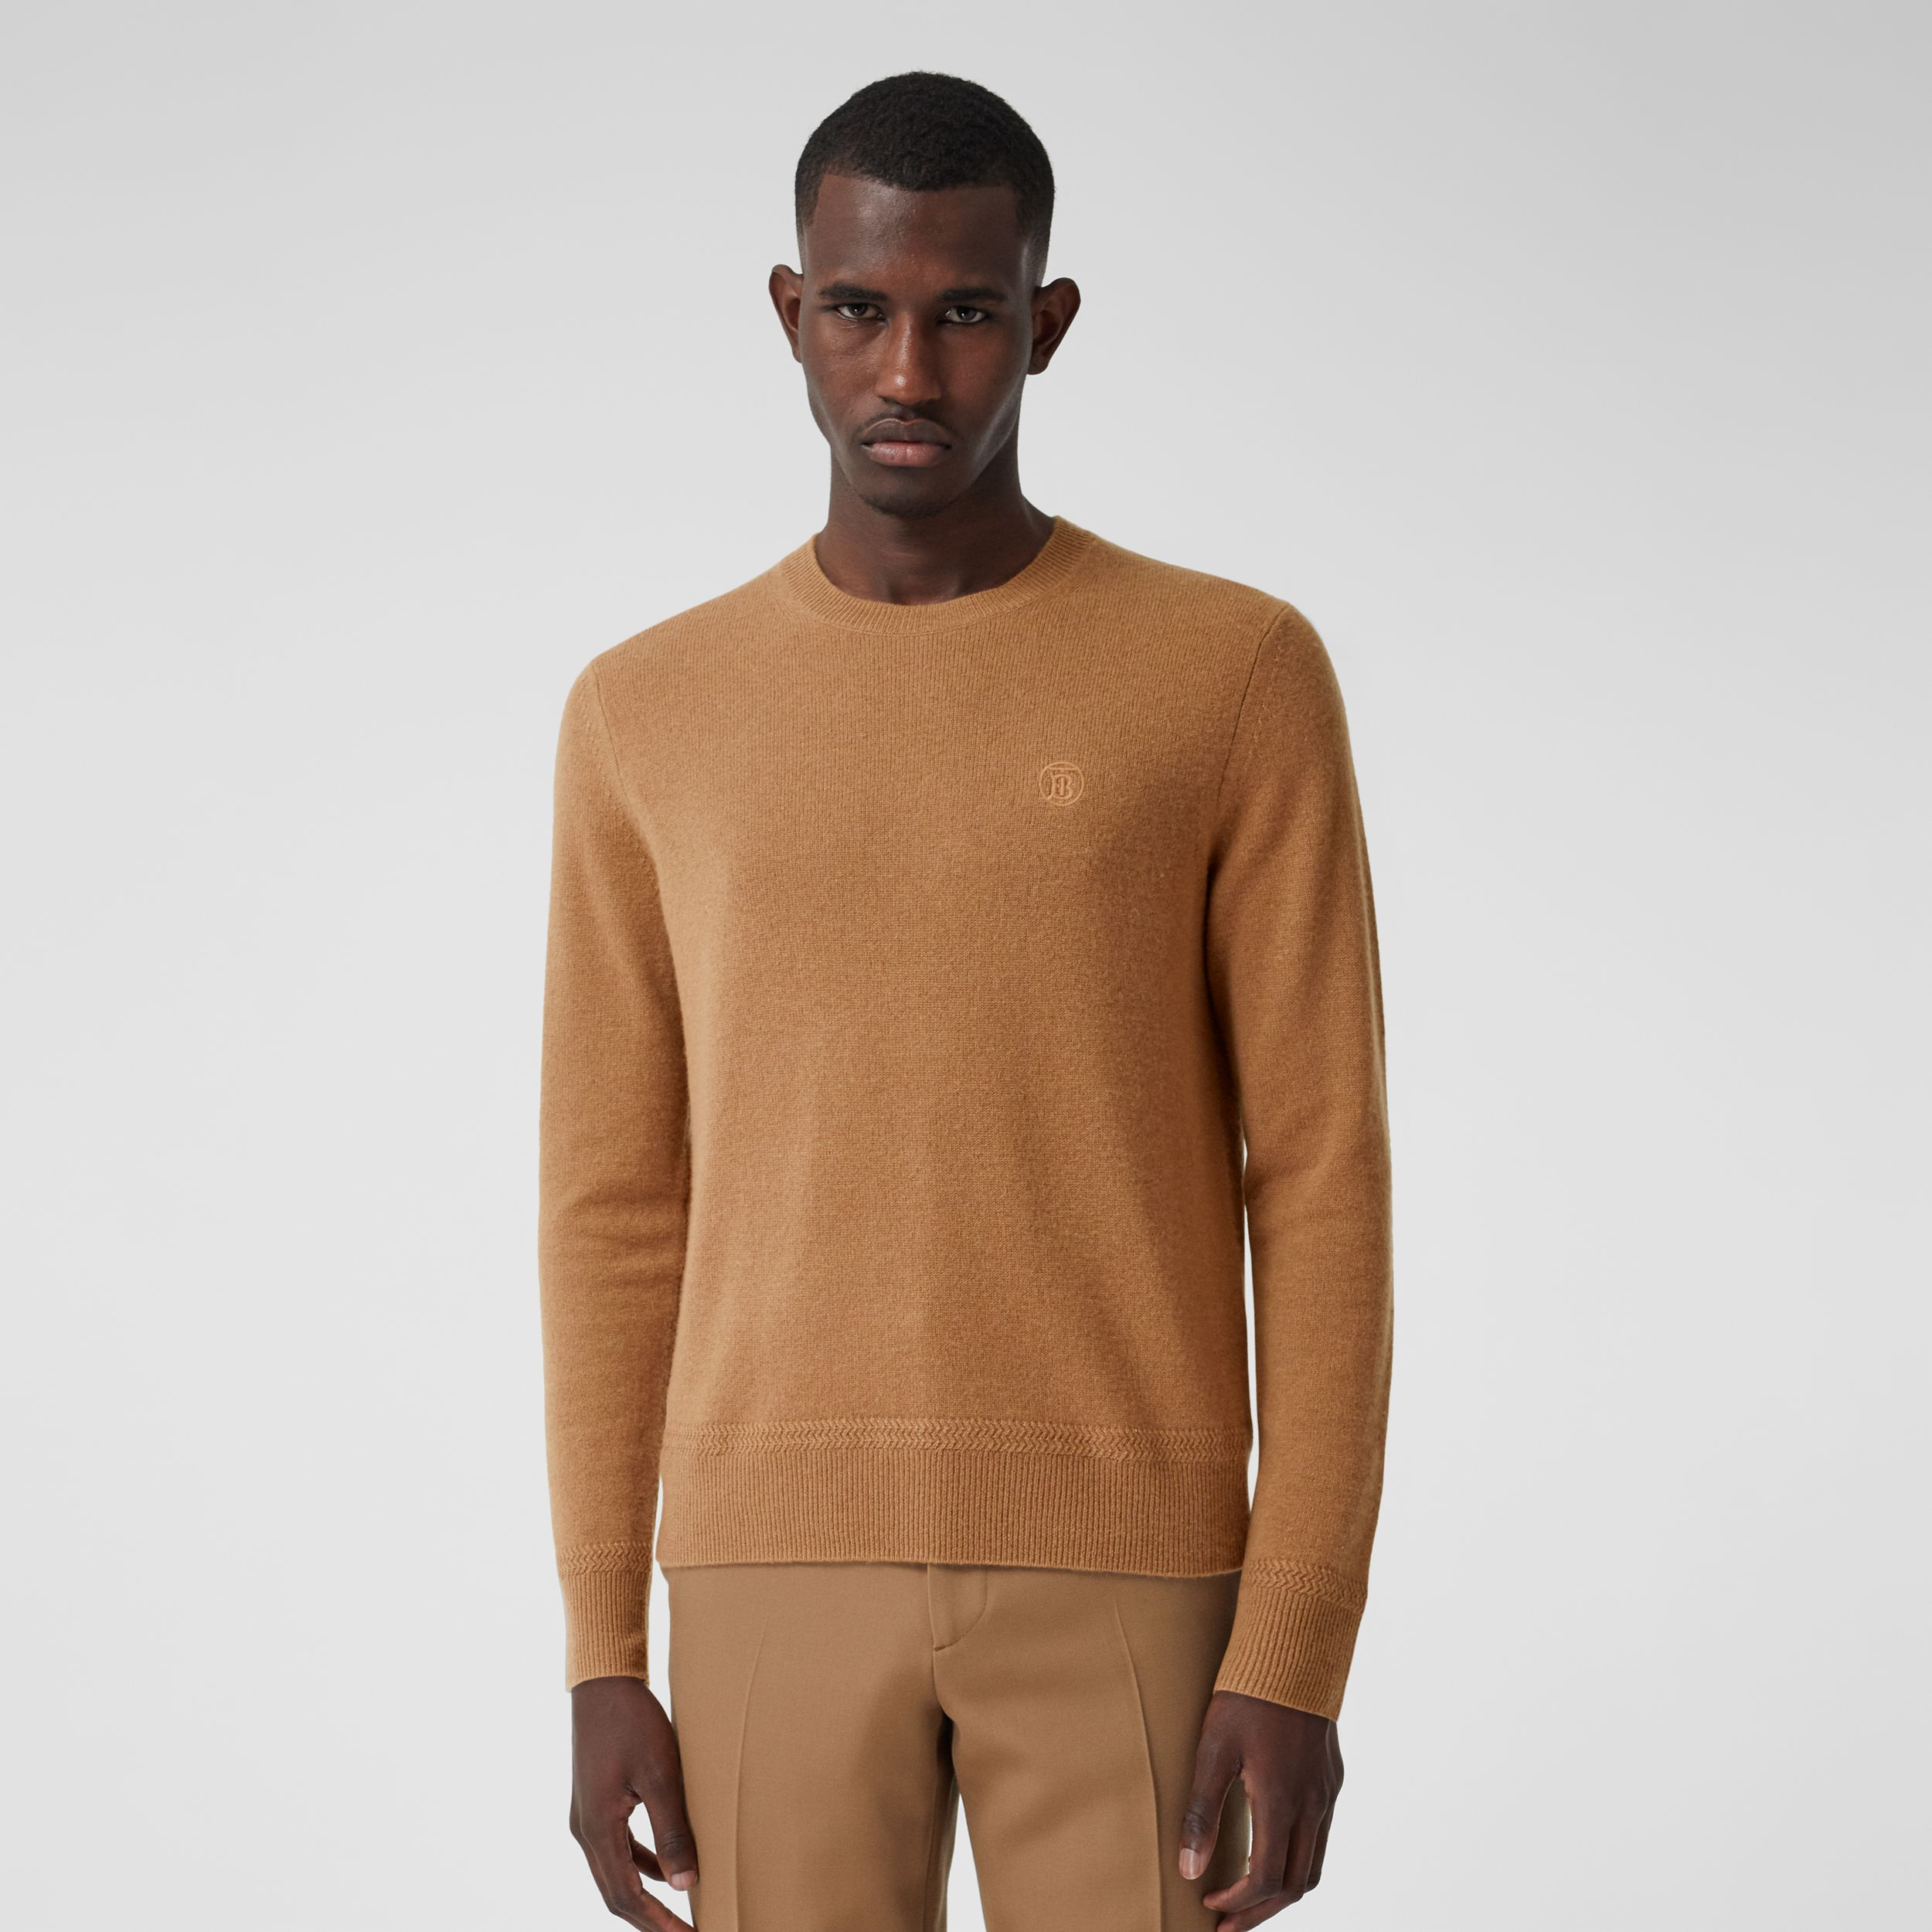 Monogram Motif Cashmere Sweater in Camel - Men | Burberry Singapore - 1